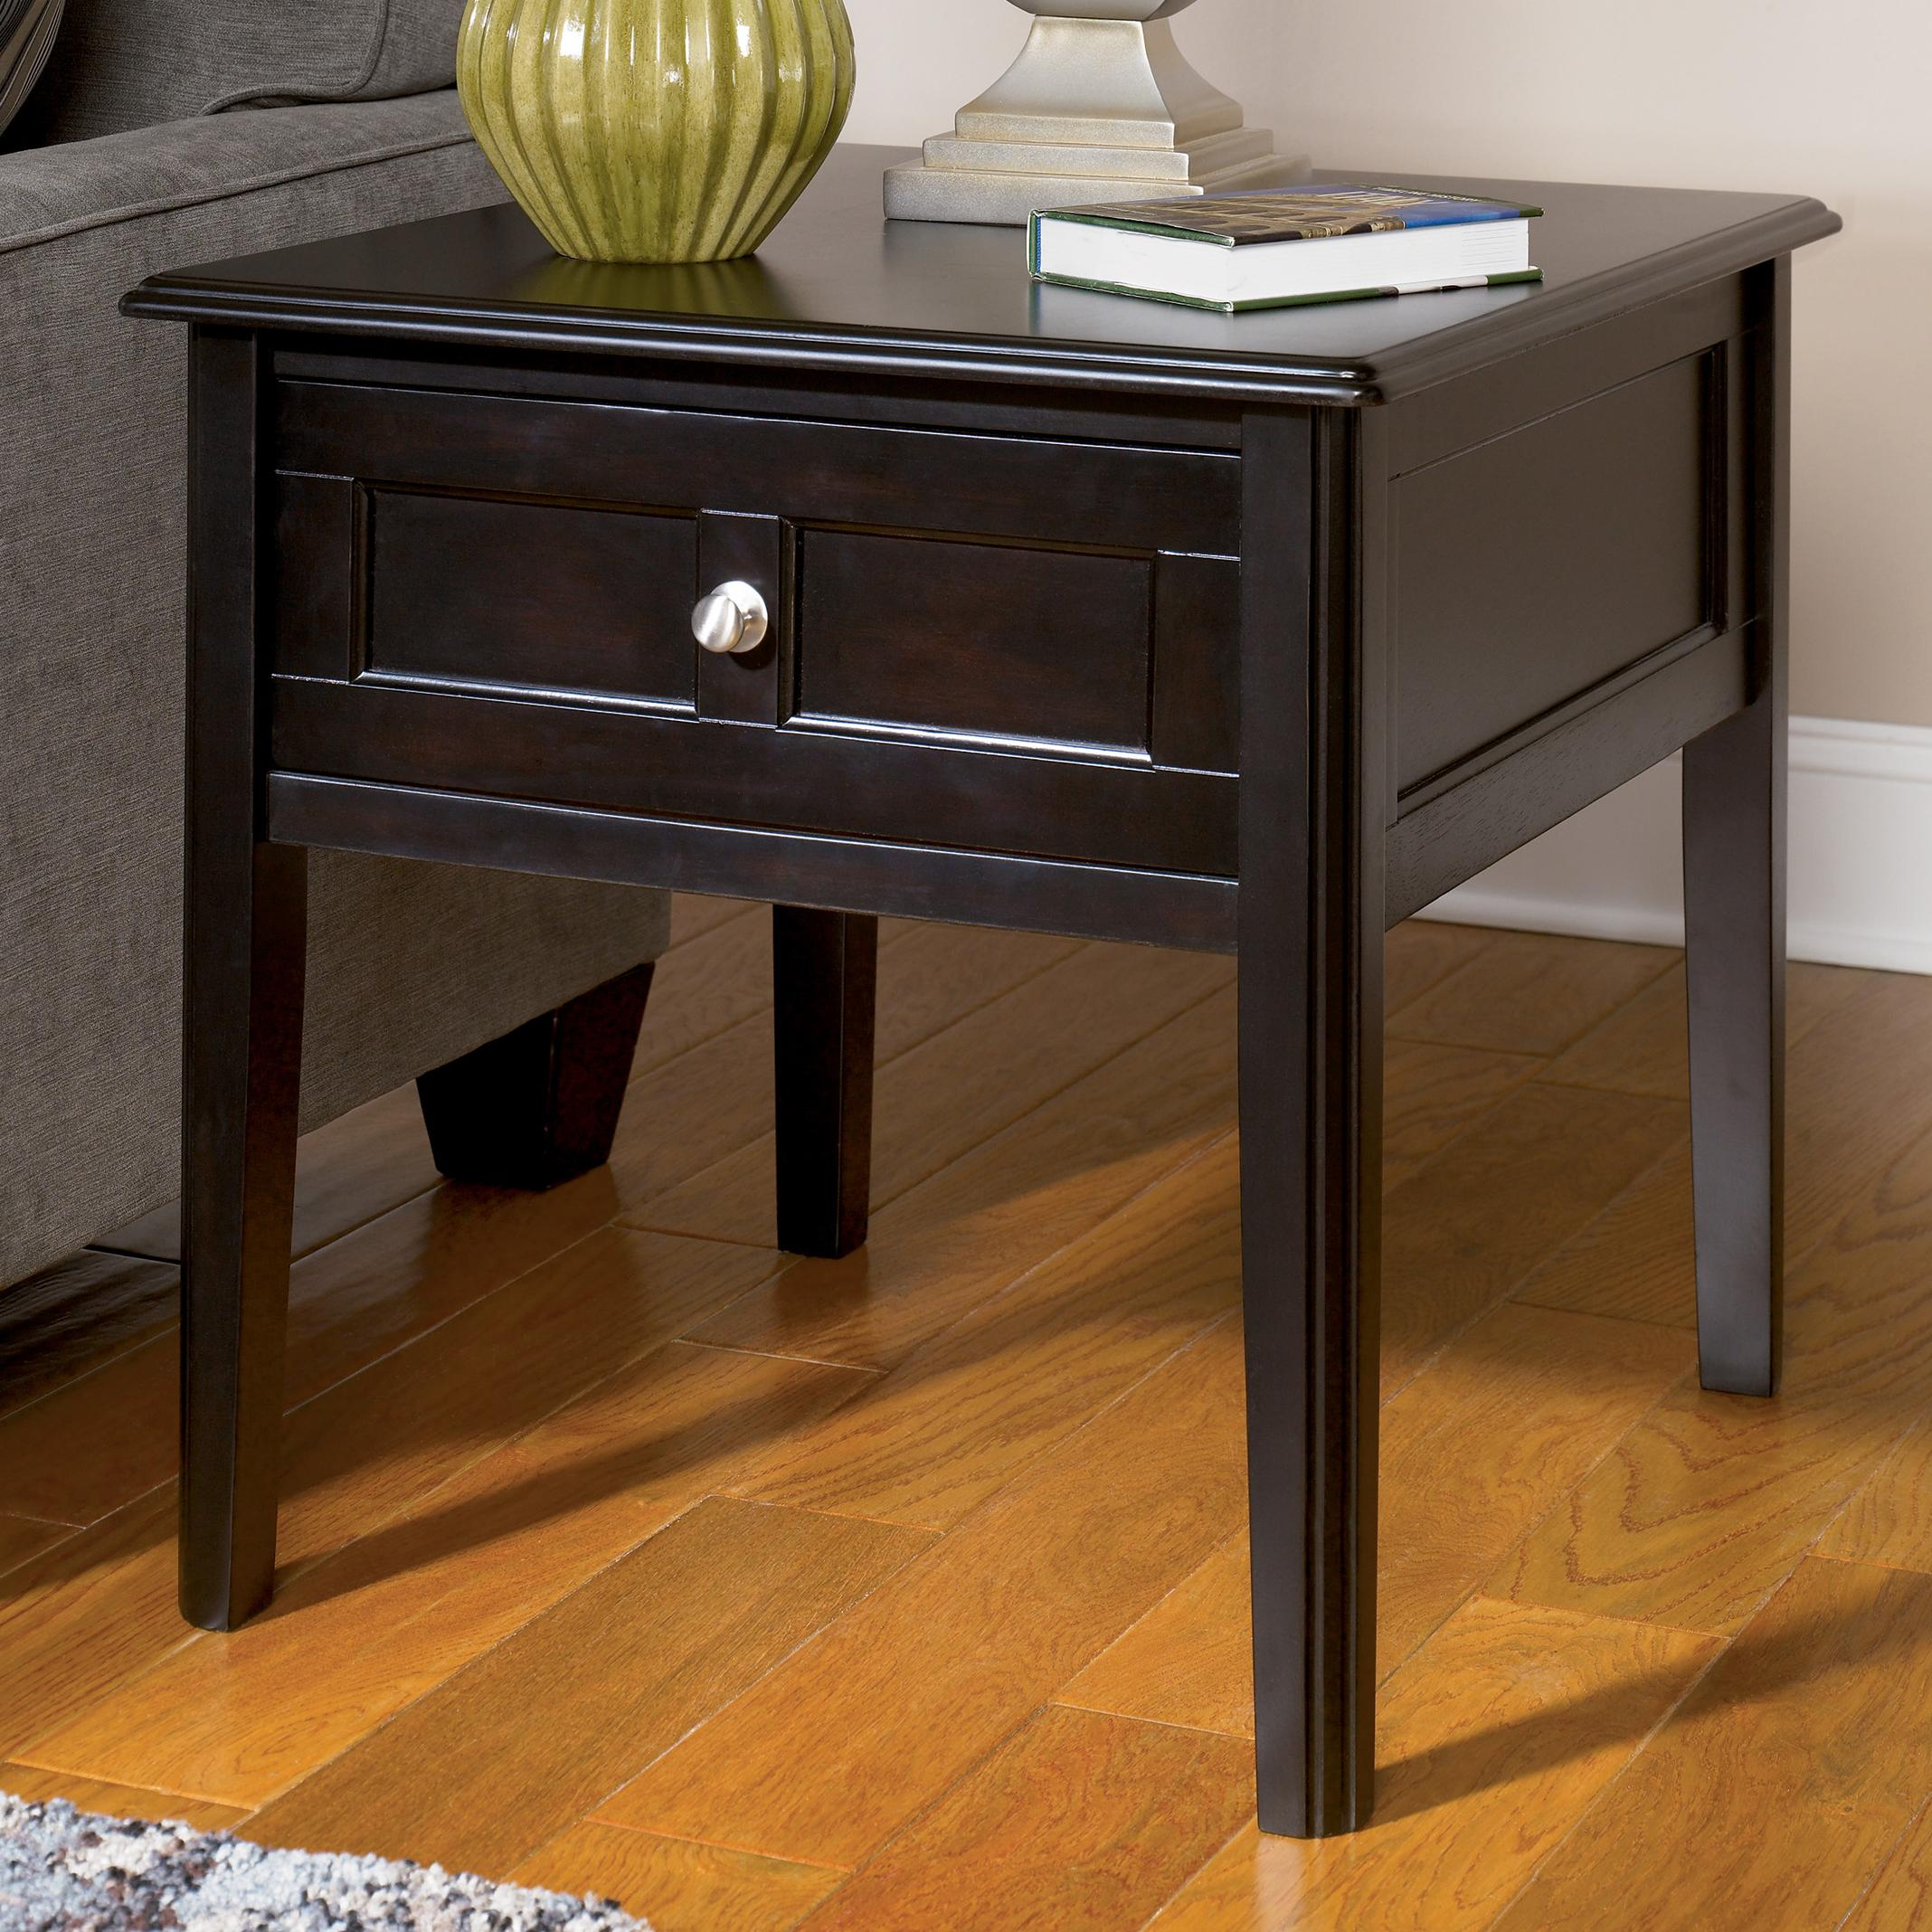 Signature Design by Ashley Henning Rectangular End Table - Item Number: T479-3